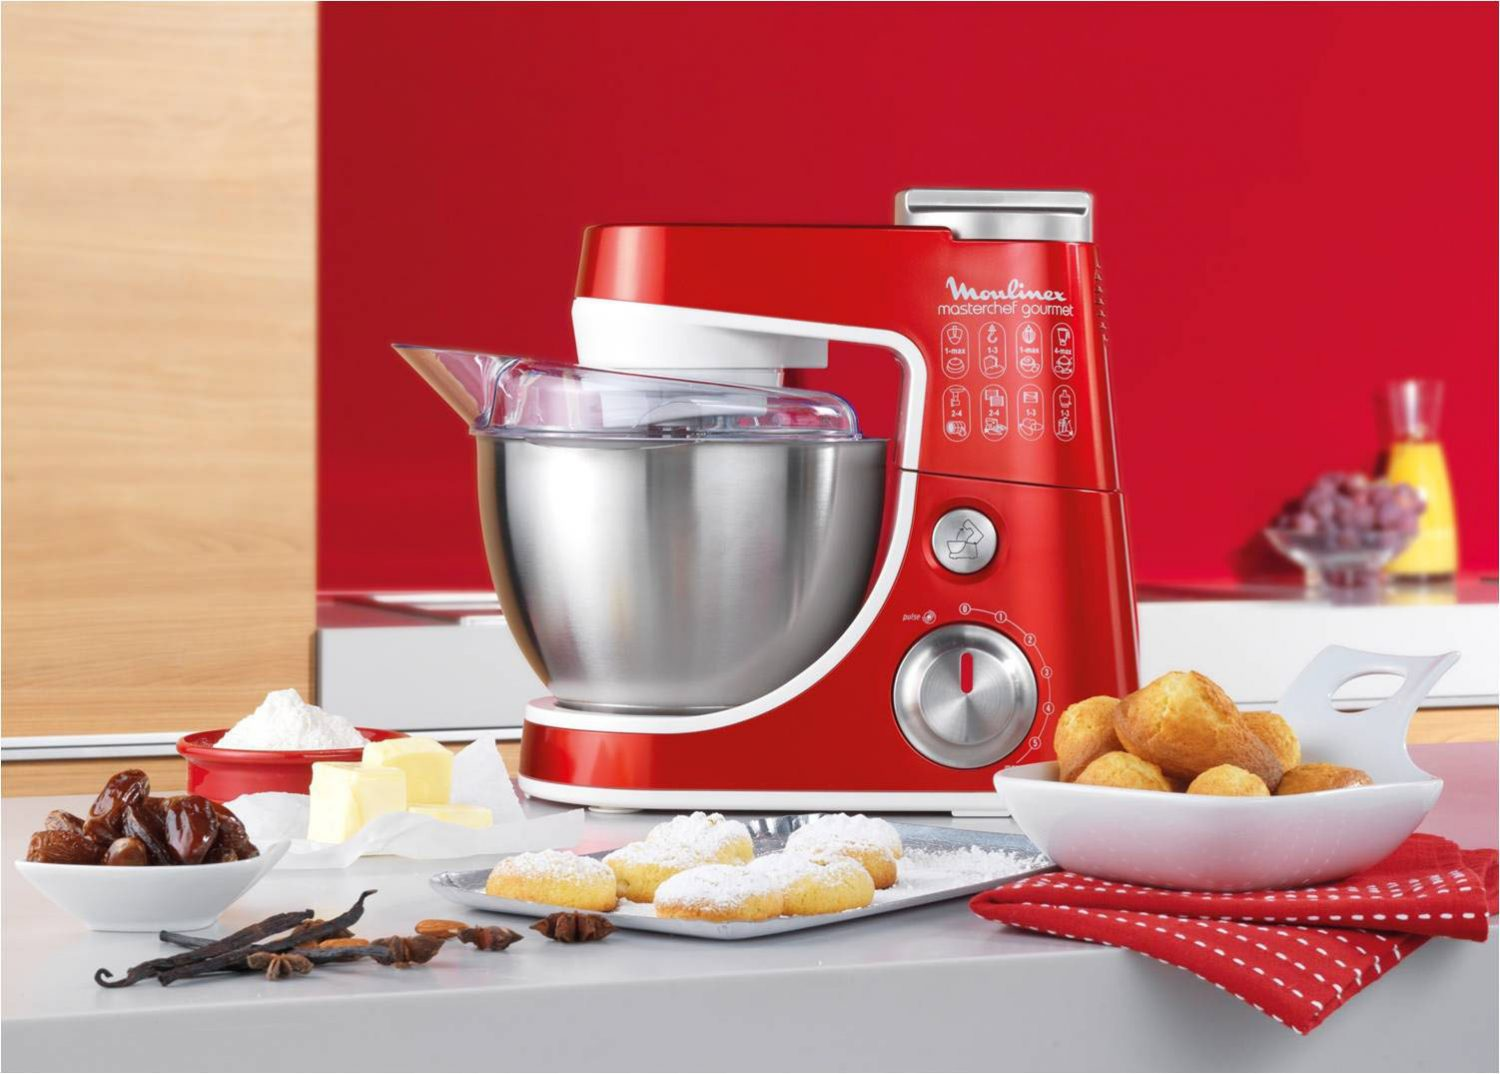 Moulinex Kitchen Machine - Masterchef Gourmet 2